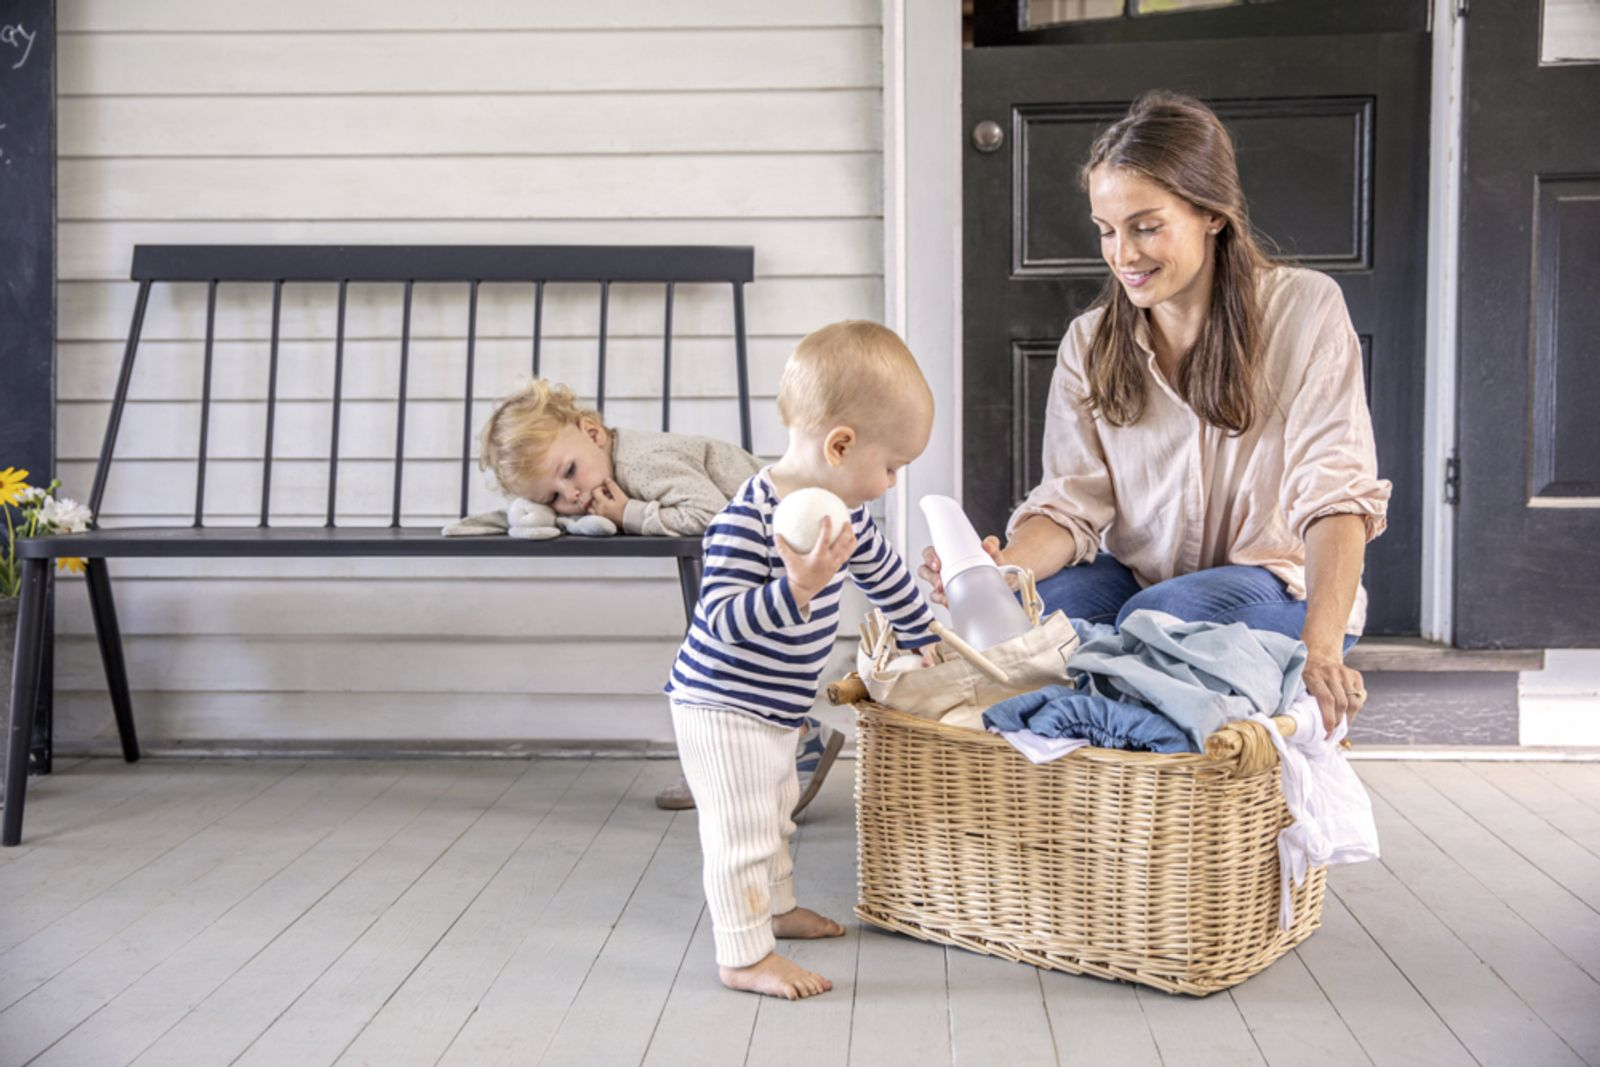 Woman and children with laundry basket